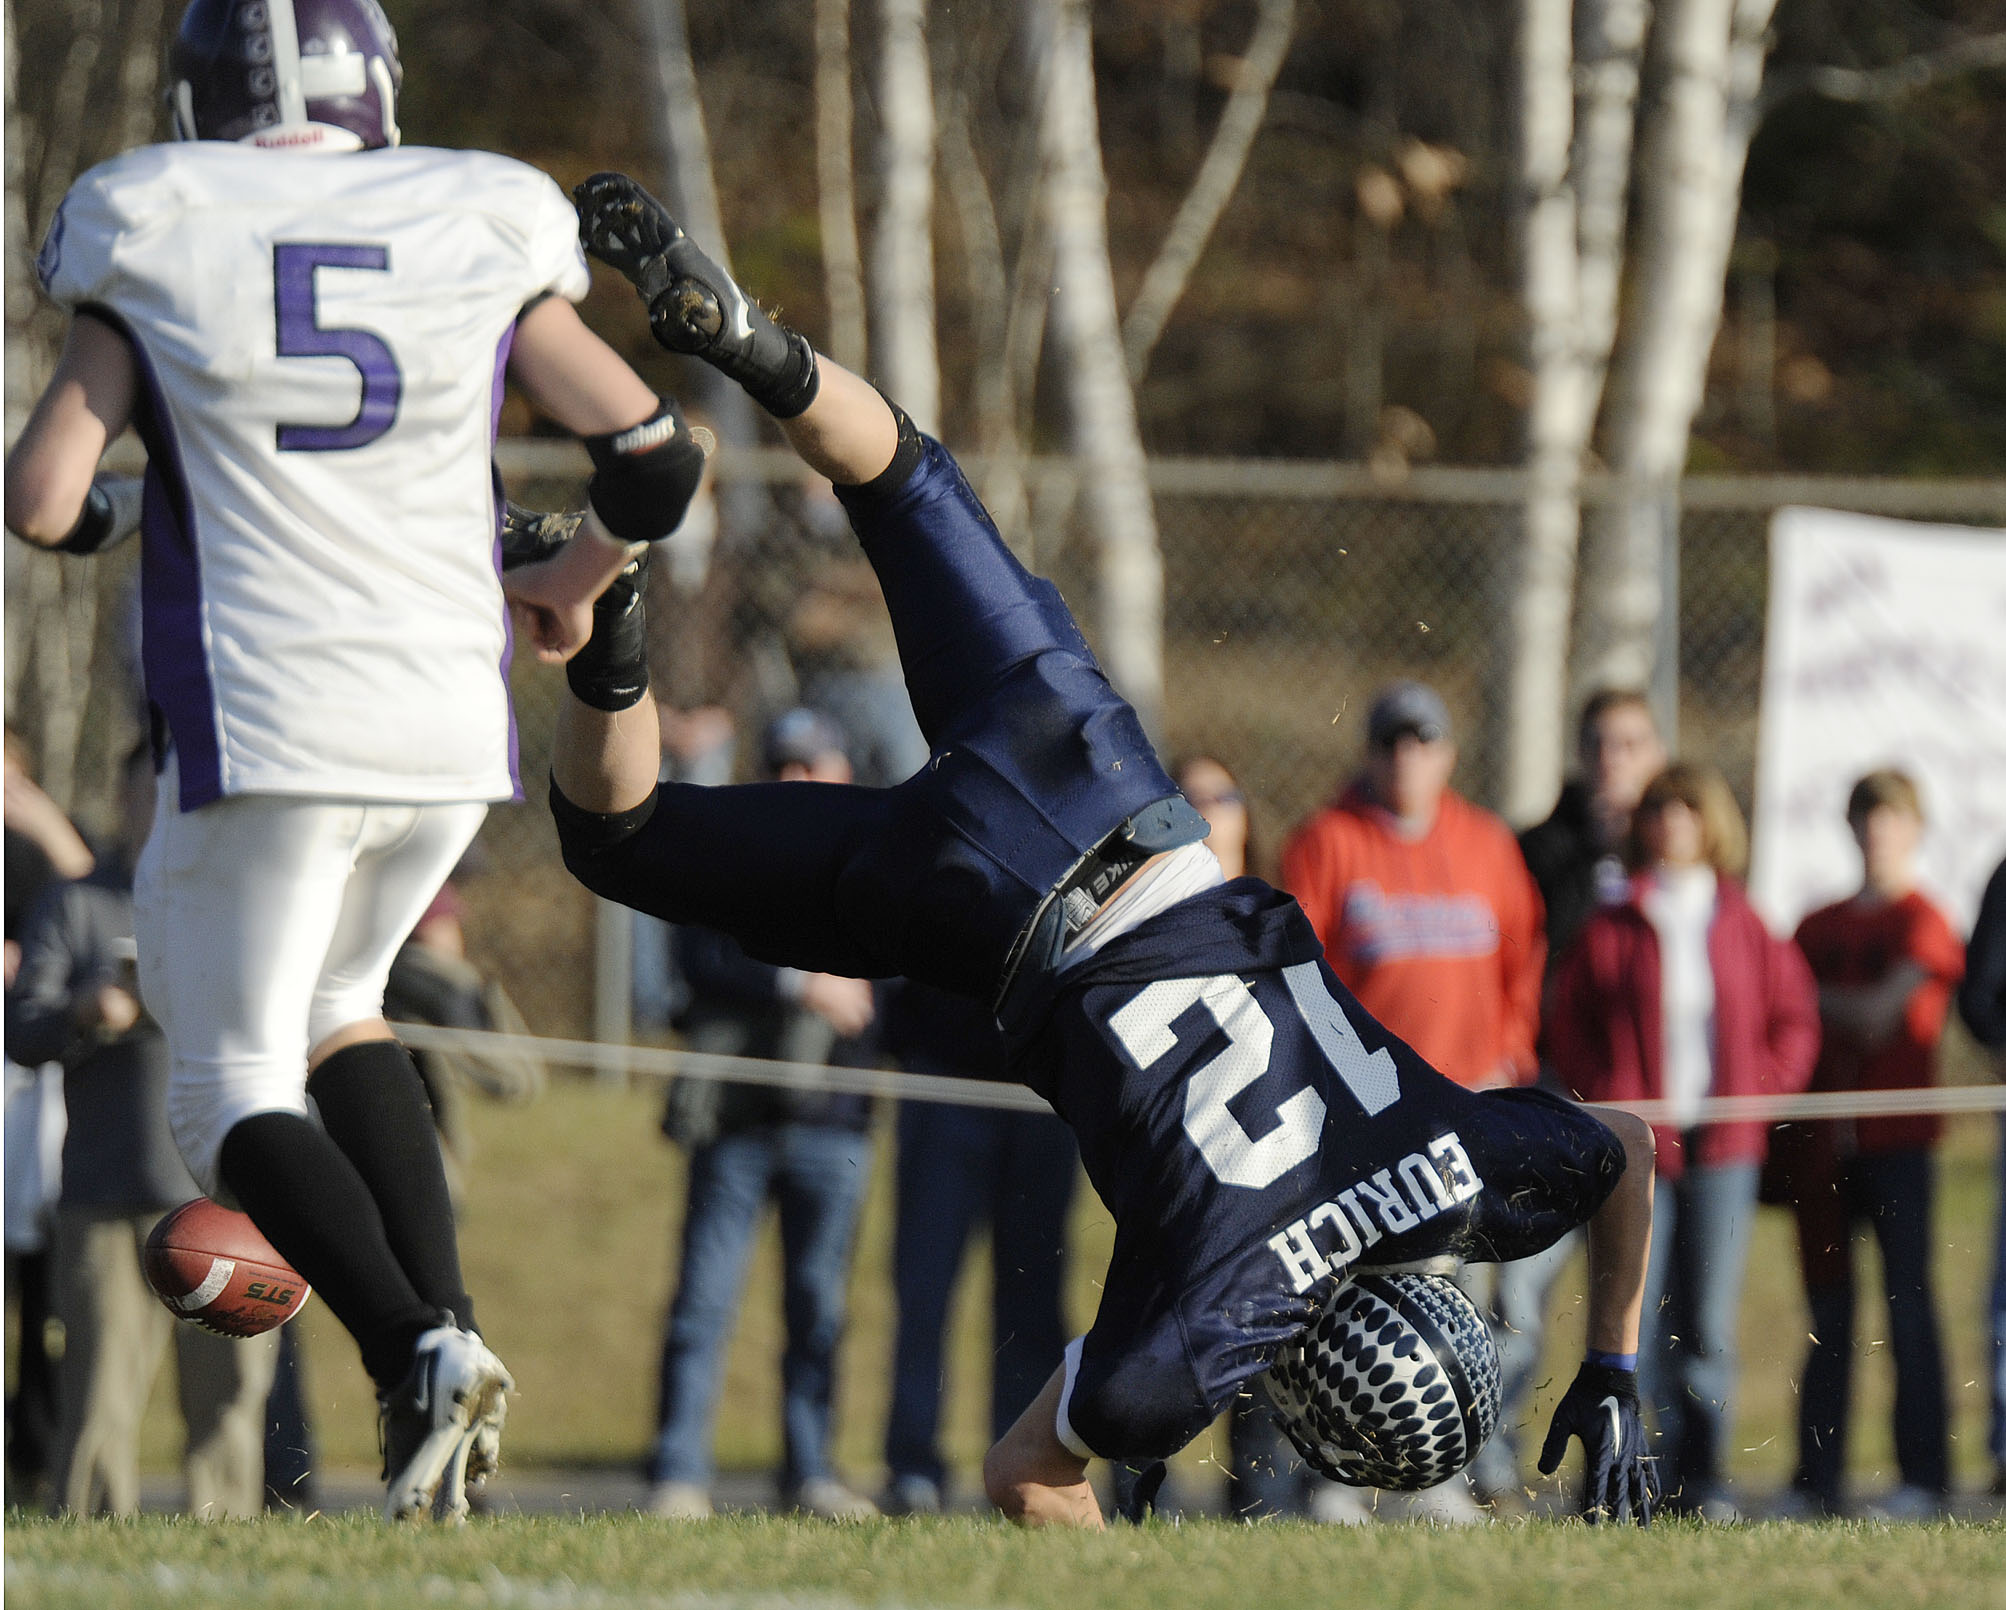 Stearns' running back Billy Eurich (12) gets upended as he can't come up with a pass in the second half of against John Bapst in the Eastern Maine Class C final in Millinocket, Saturday, Nov. 14, 2010. (BDN Photo by Michael C. York)